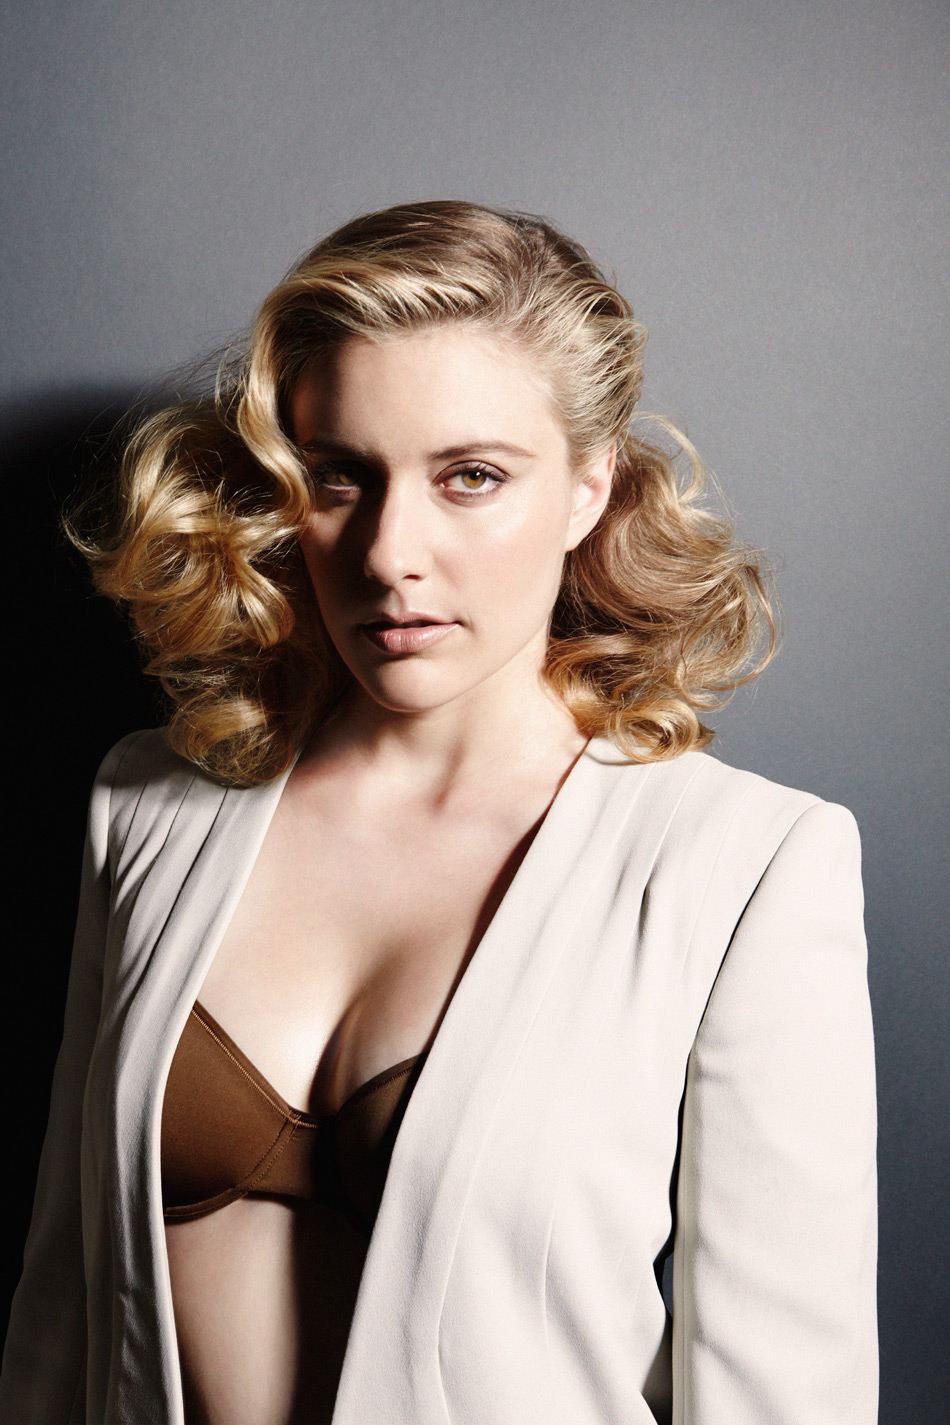 Greta_Gerwig_David_Needleman_01.jpg